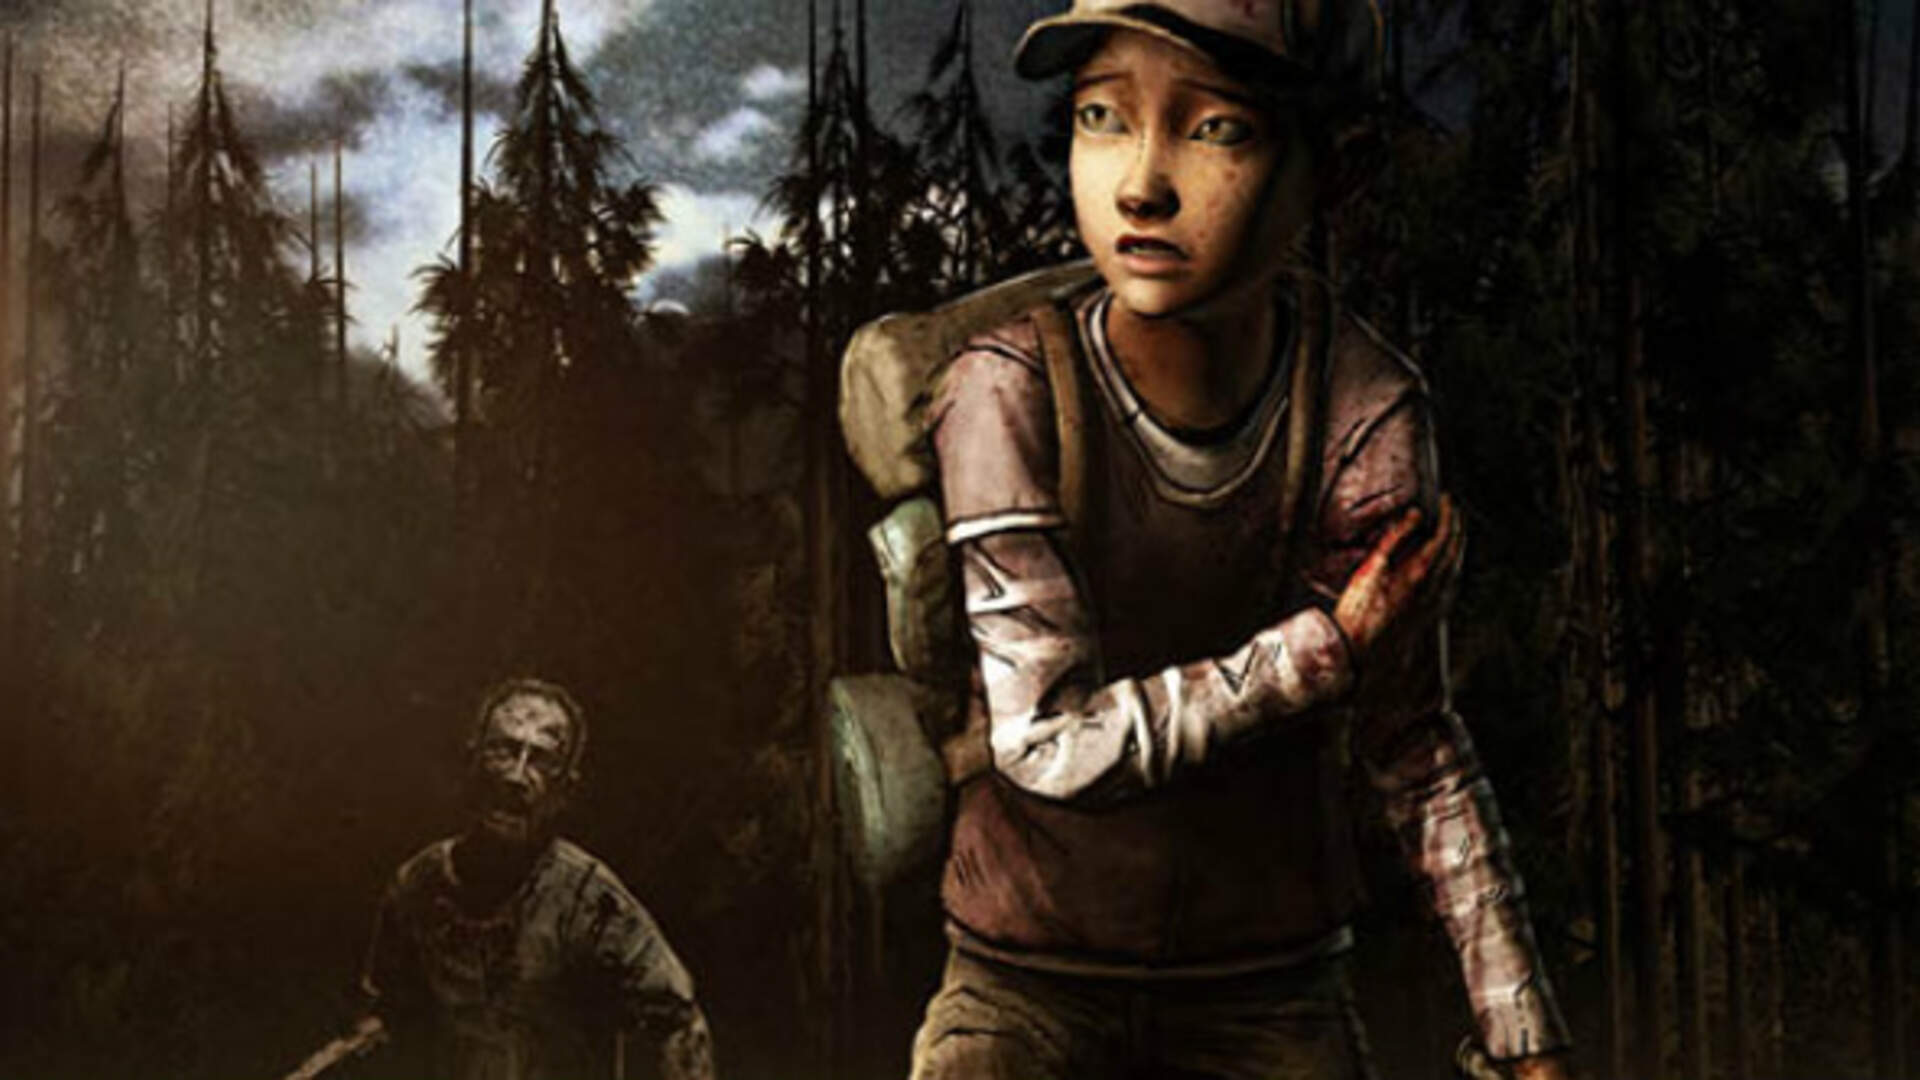 Skybound Wants to Work With Original The Walking Dead: Final Season Team